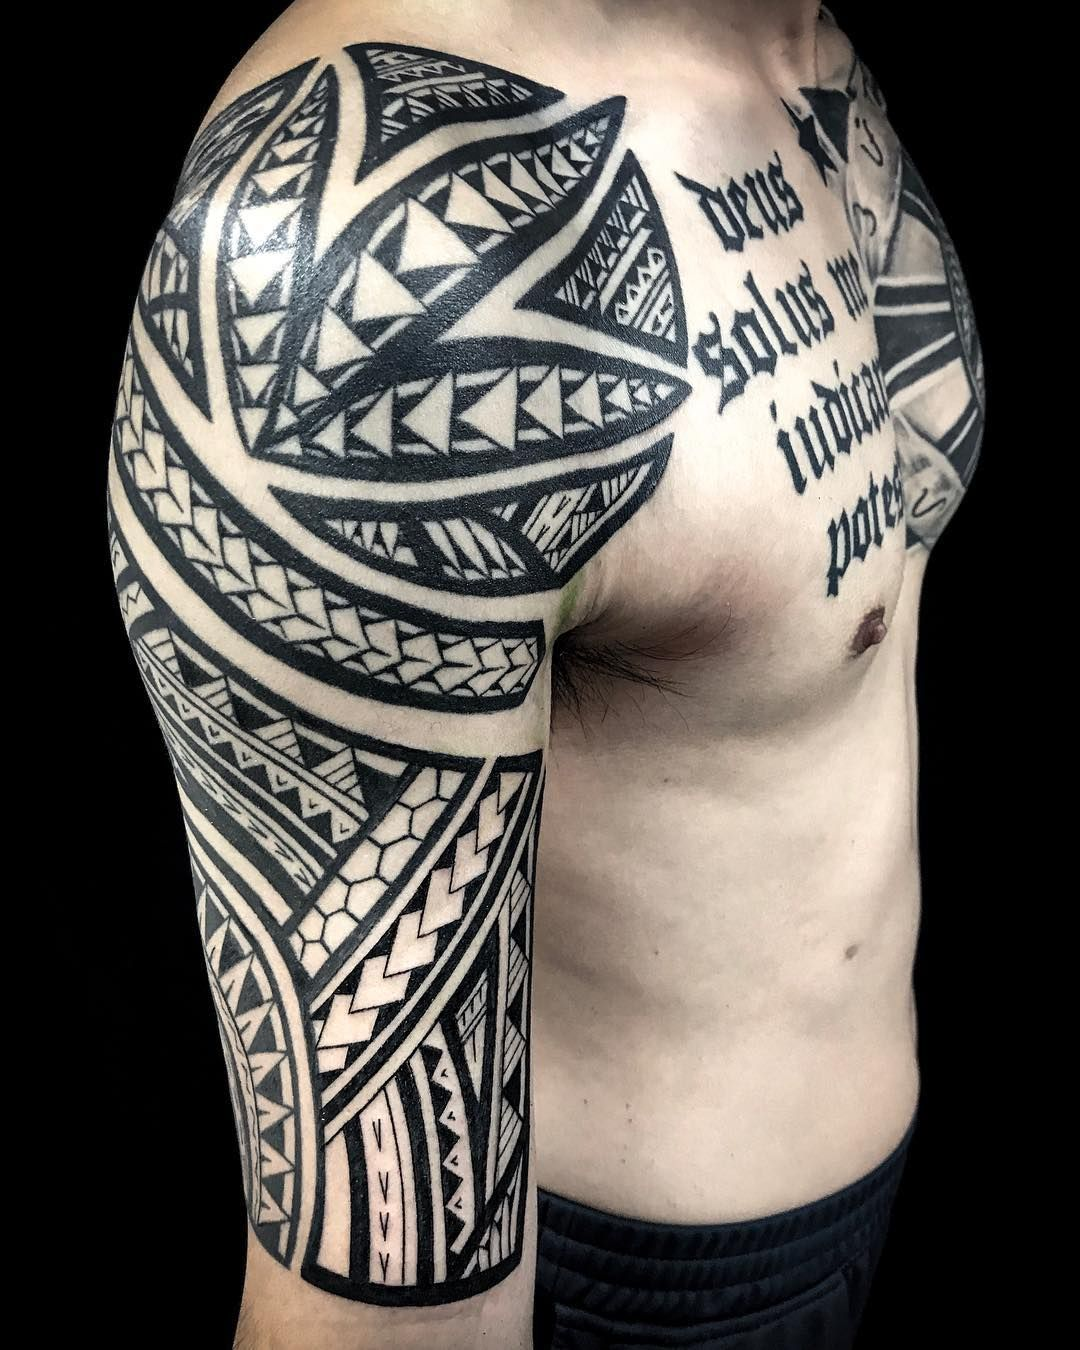 100 Best Tribal Tattoos And Designs For Men And Women Millions Grace Tribal Tattoos Cool Tribal Tattoos Tattoos